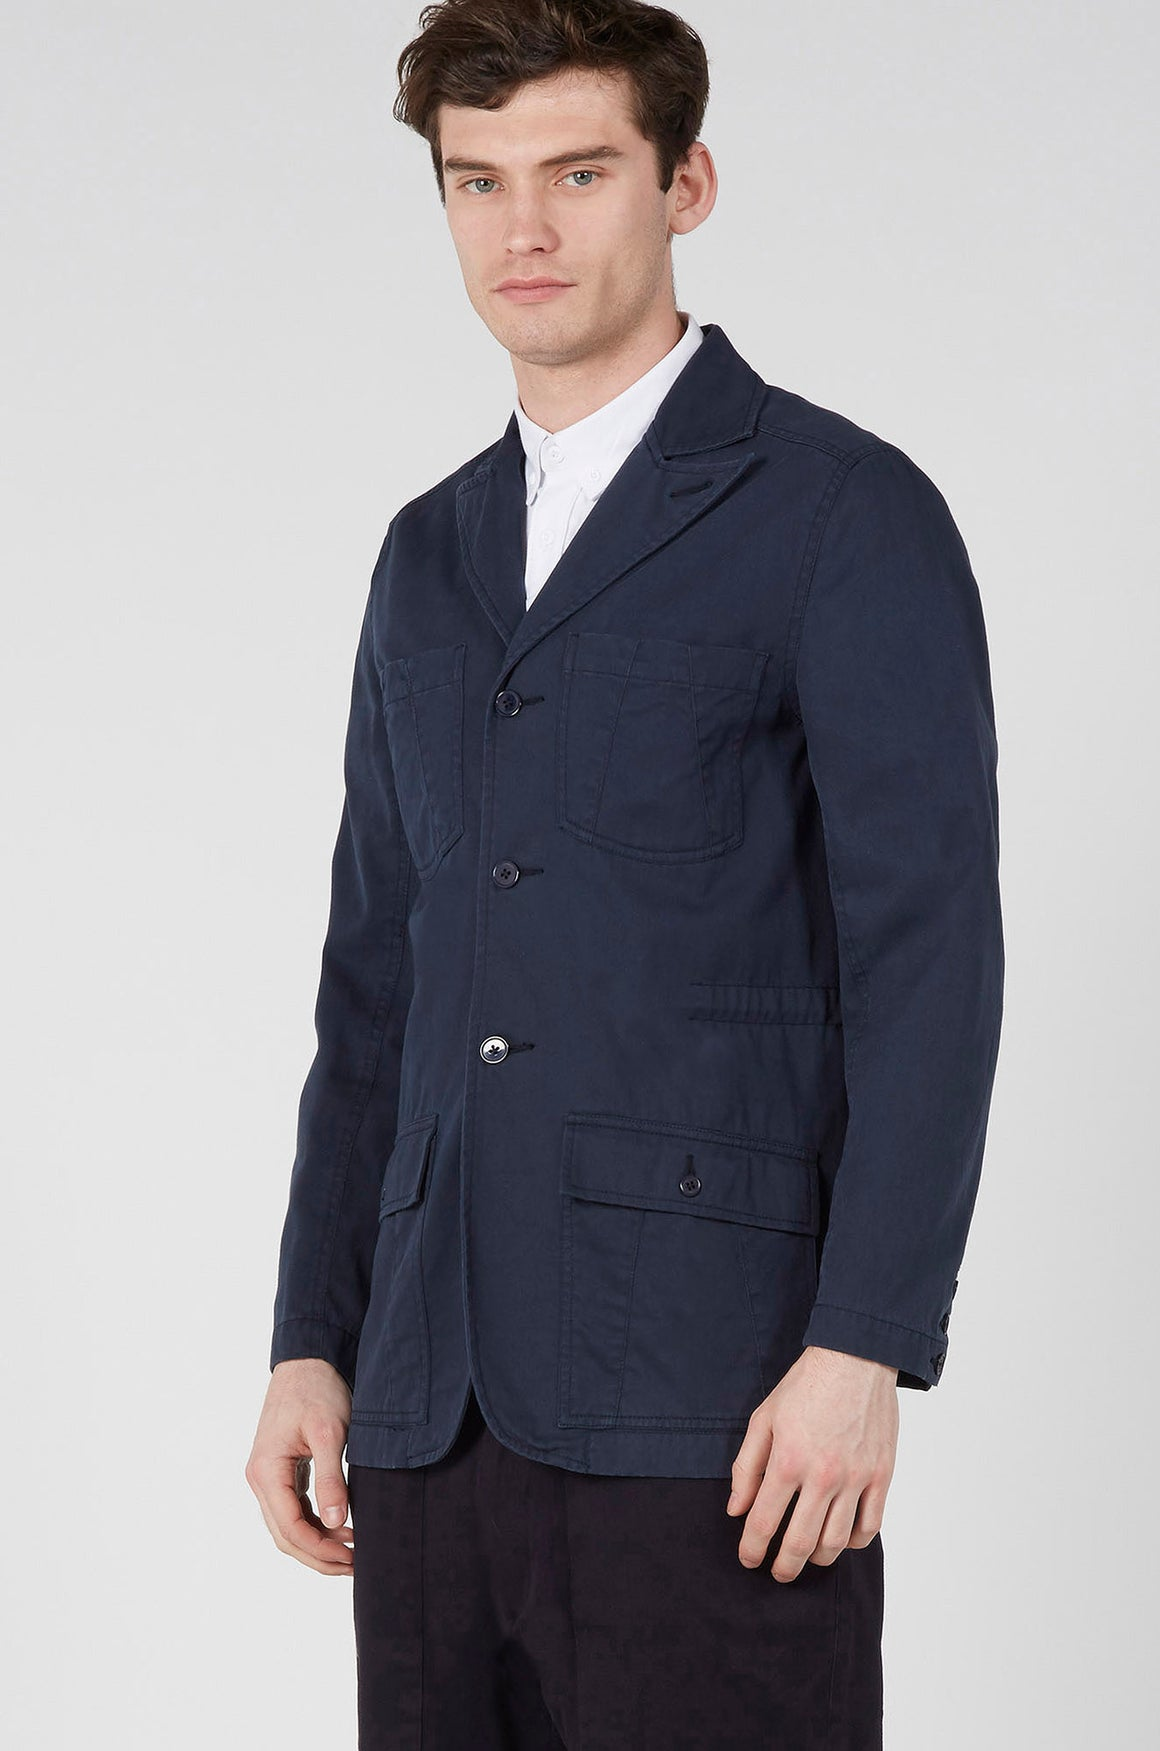 Realm & Empire Jungle Field Jacket | Navy